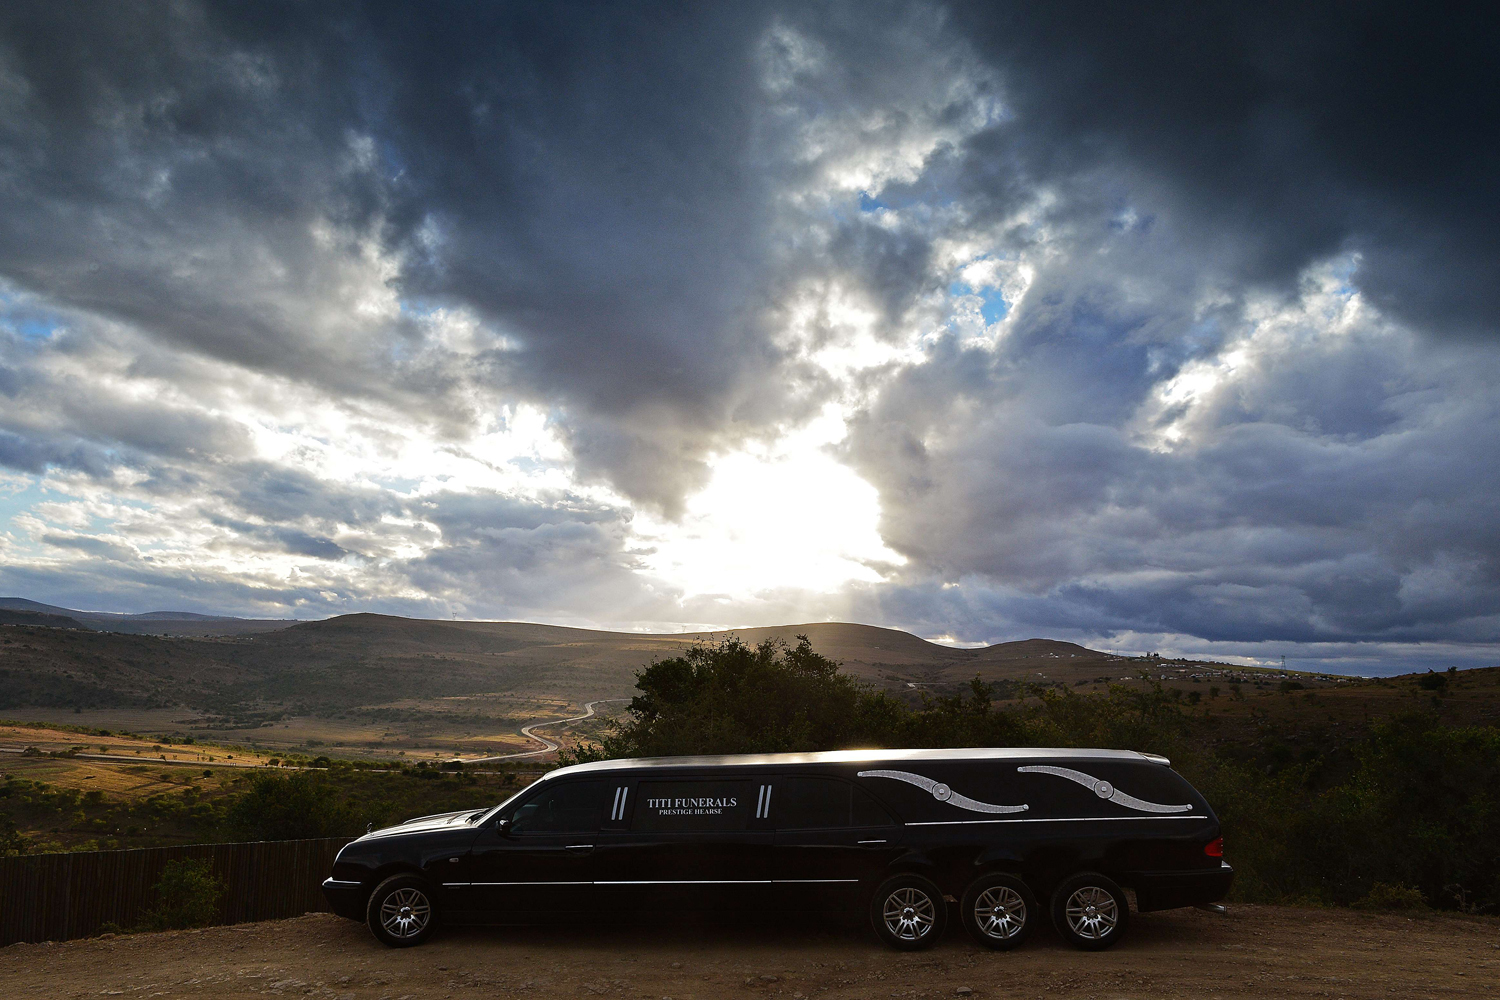 July 3, 2013. A hearse is pictured at Mvezo resort after being accompanied by a police convoy to collect the remains of former South African President Nelson Mandela's children.